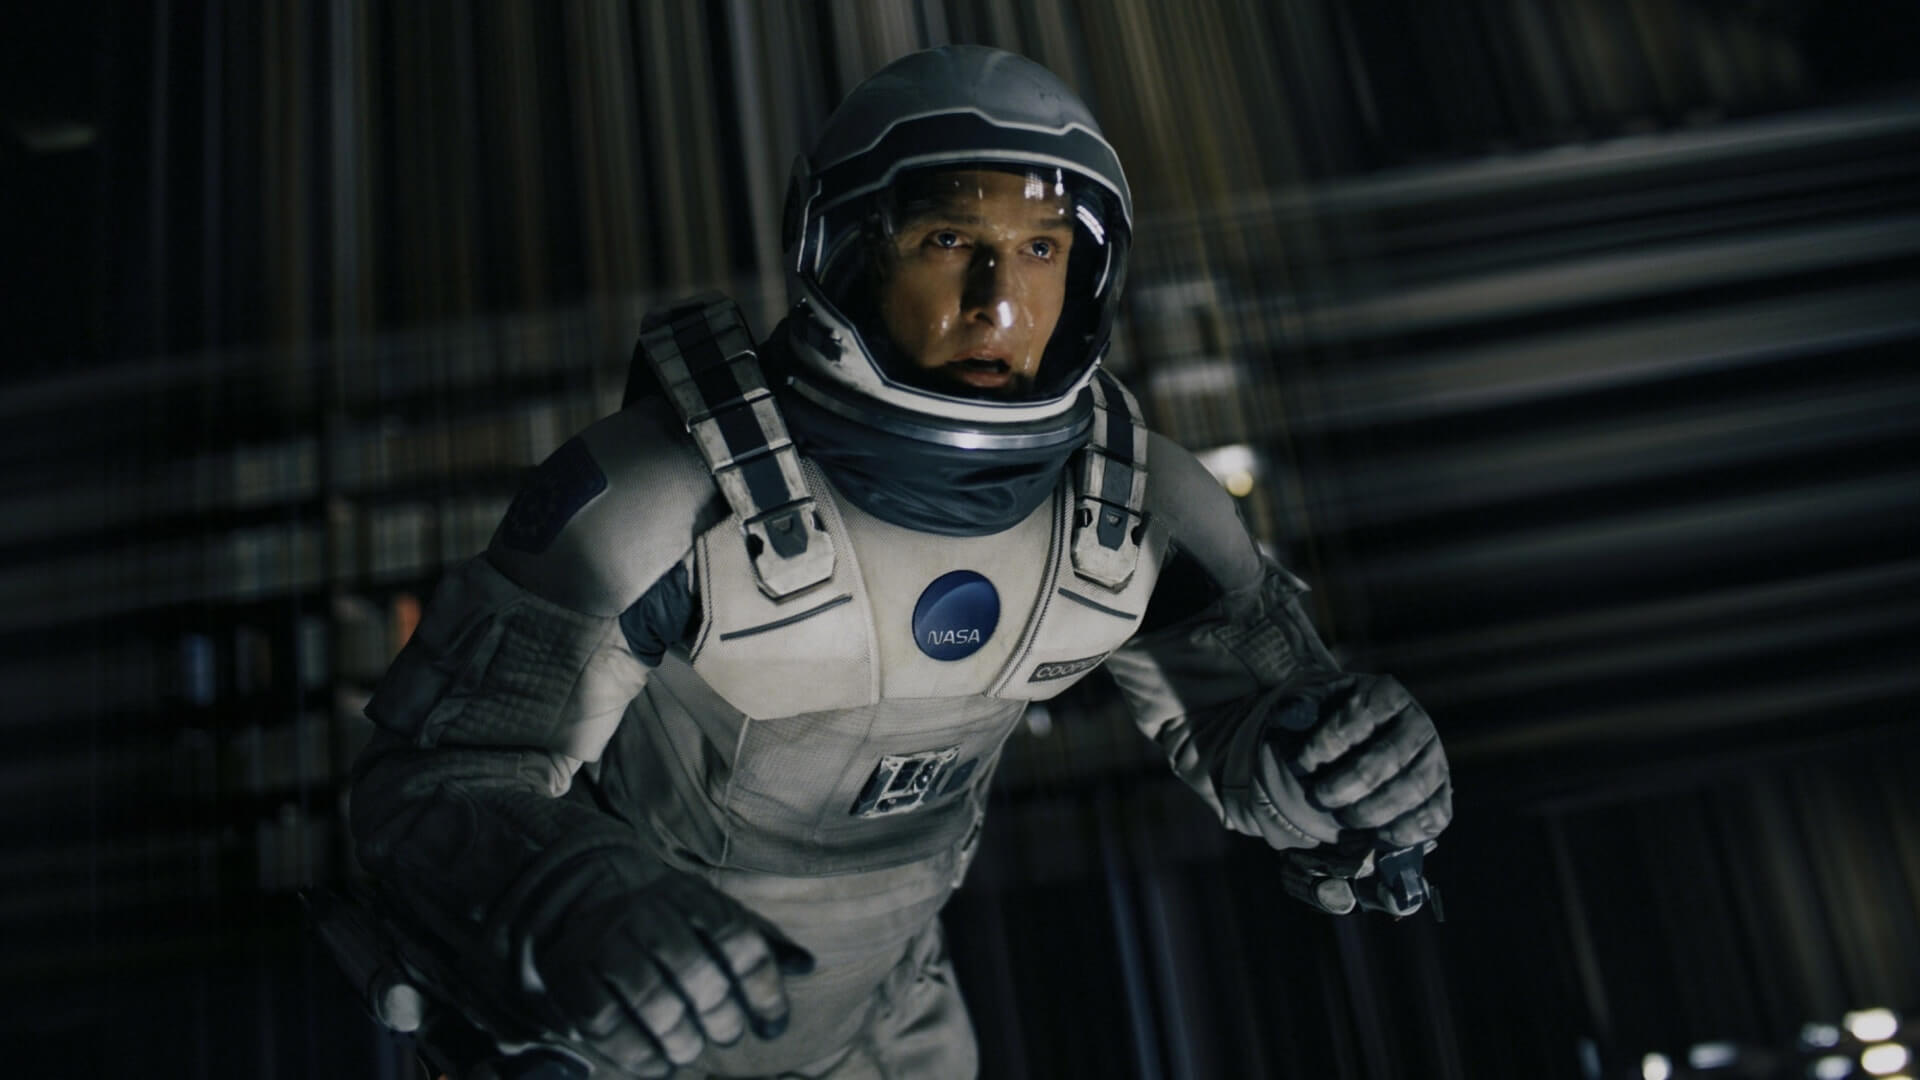 How to Design Shot Lists Like Christopher Nolan - Interstellar - StudioBinder